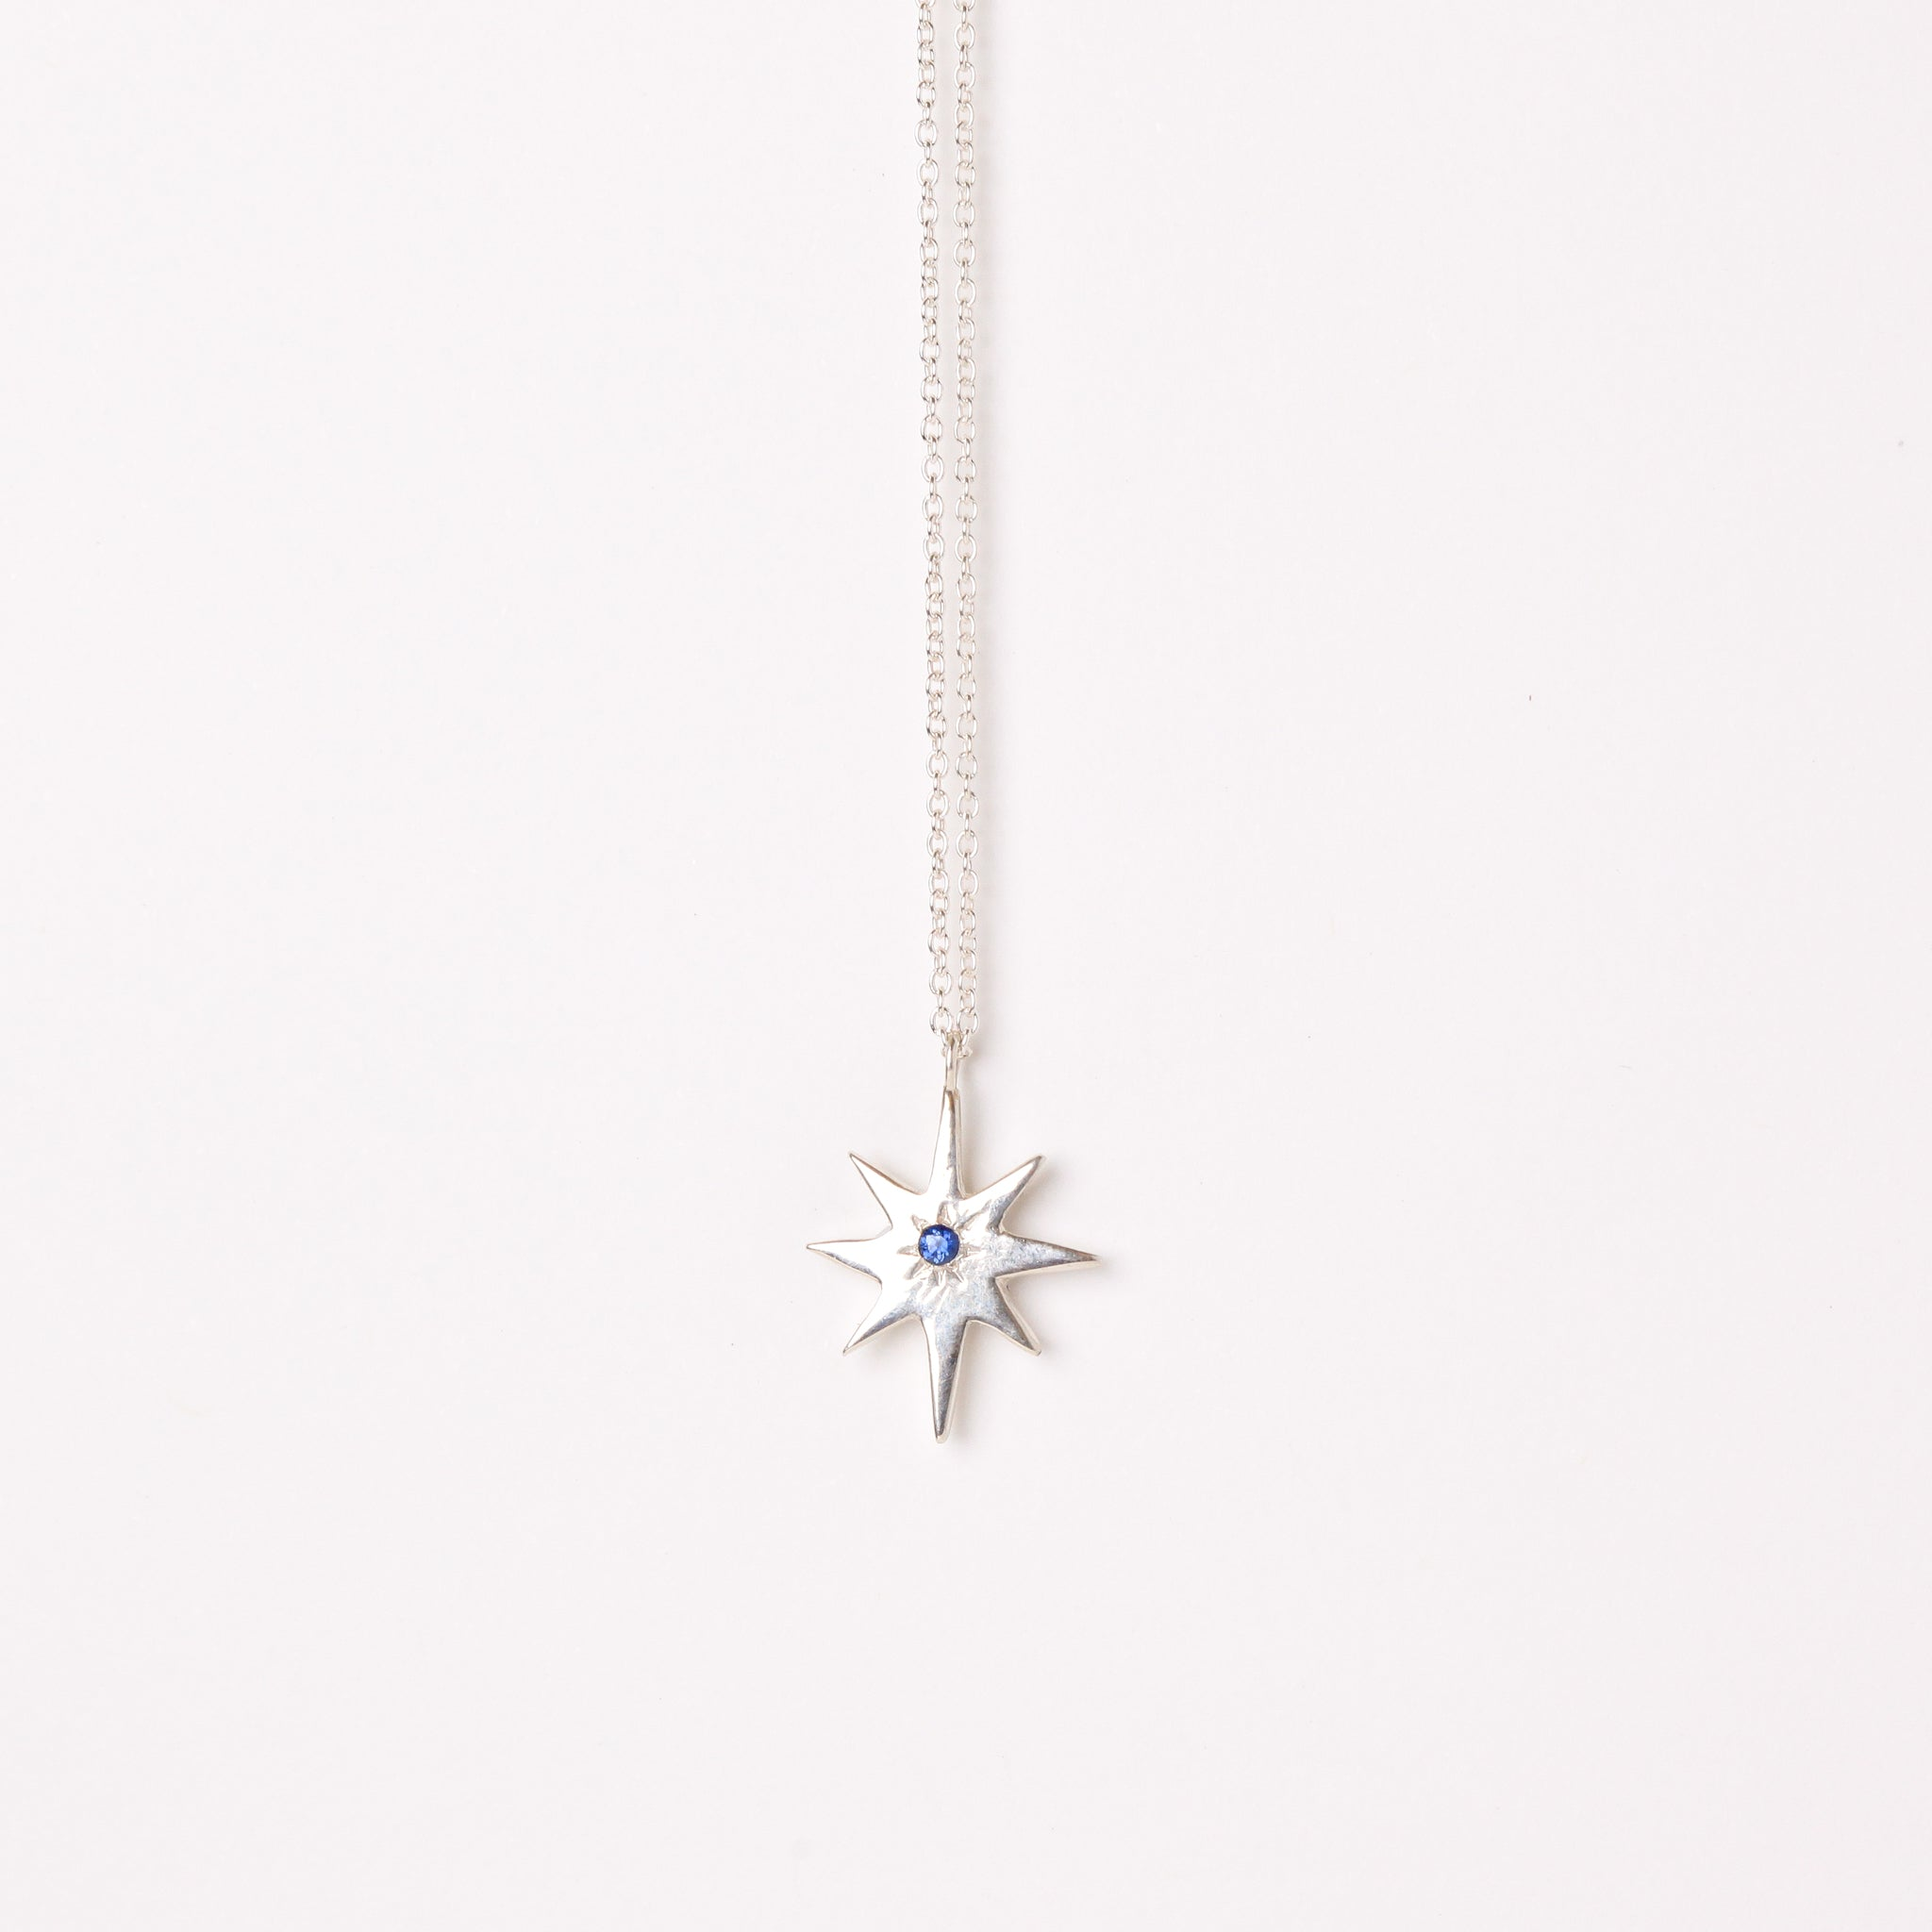 Sterling silver star pendant with ethically sourced Australian blue sapphire on a sterling silver chain. Custom Bespoke Handmade.